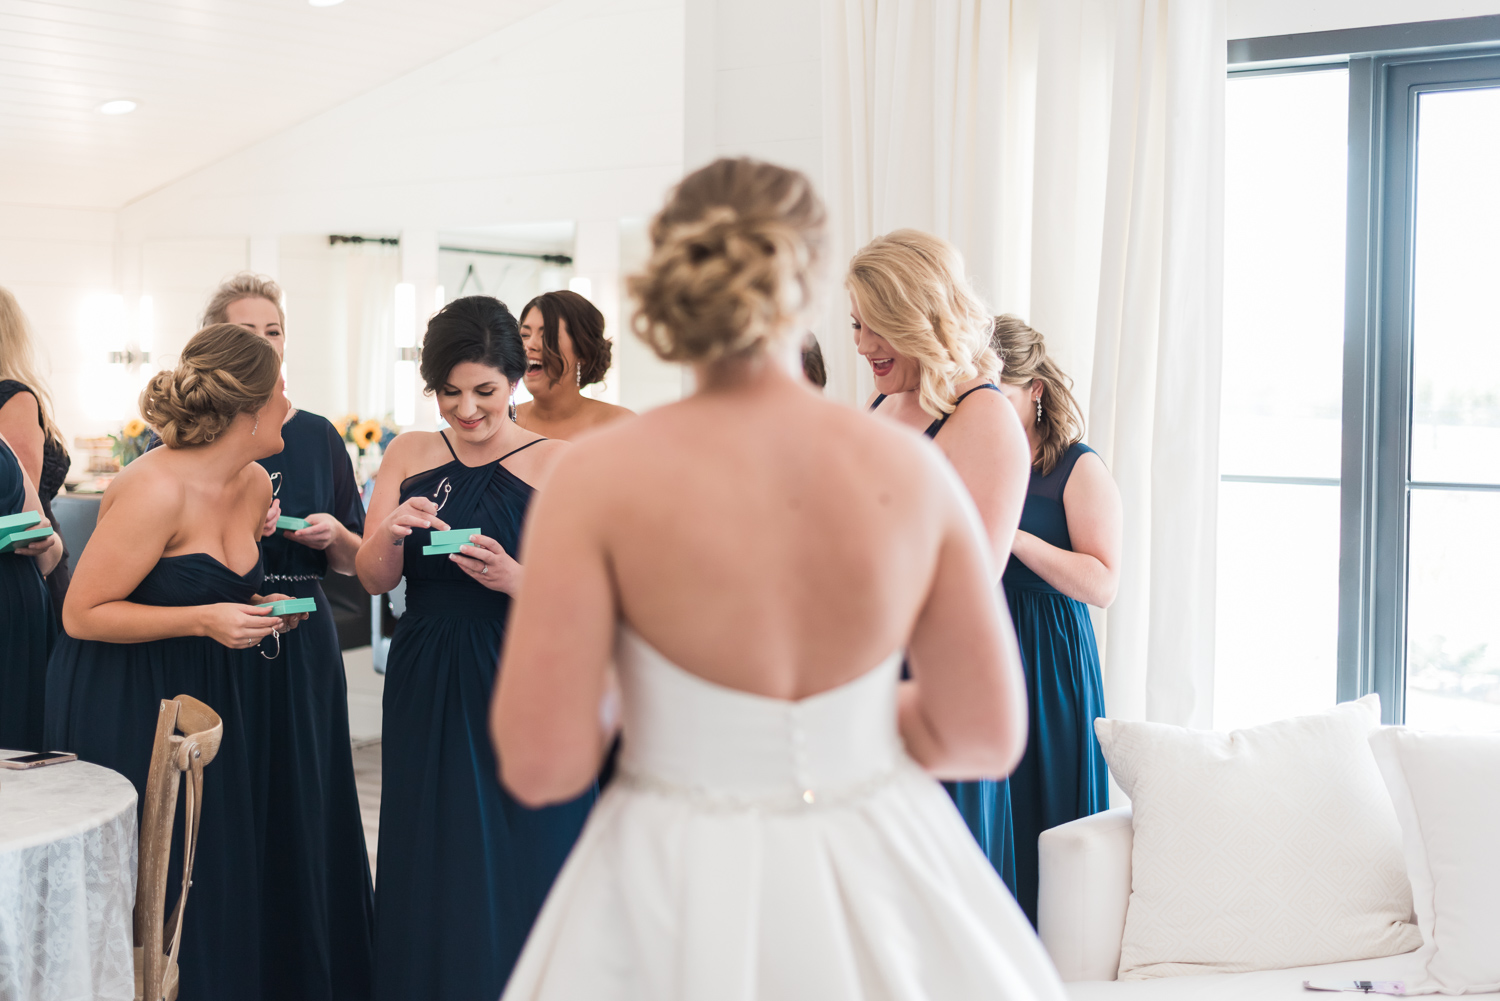 The Farmhouse_Montgomery Texas_Bridesmaids_Bride Getting Ready_Sweet Nest Photography-7.jpg